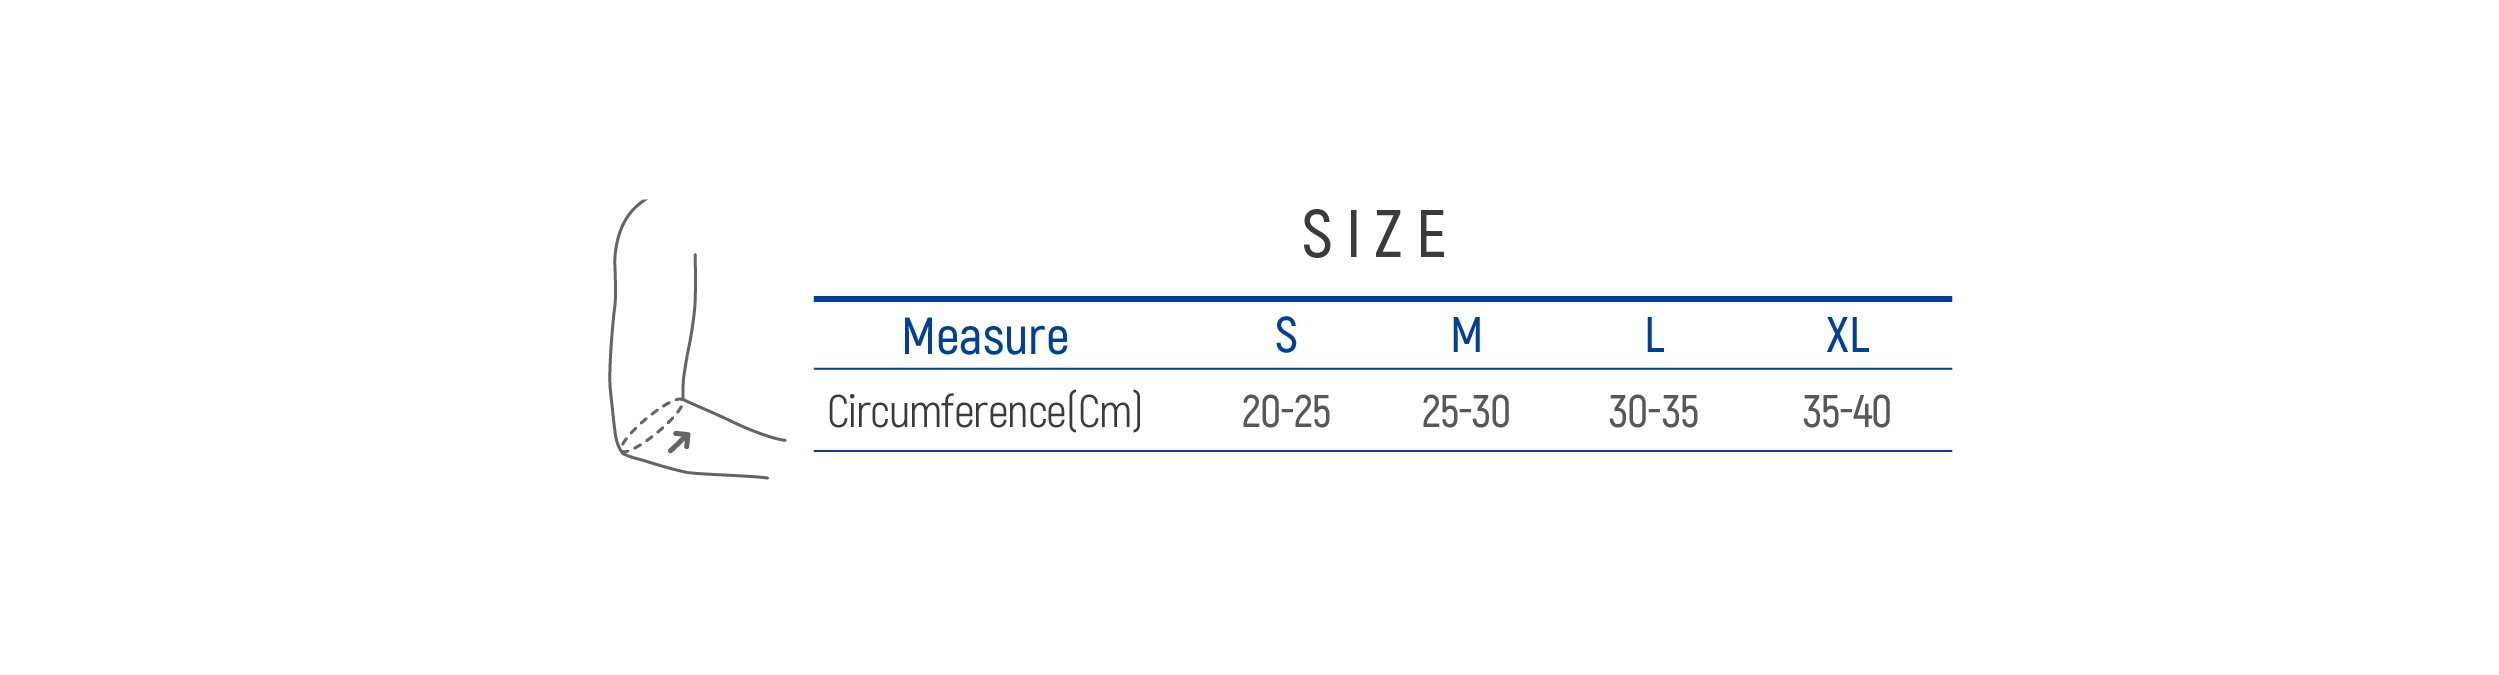 DR-E015 Size table image